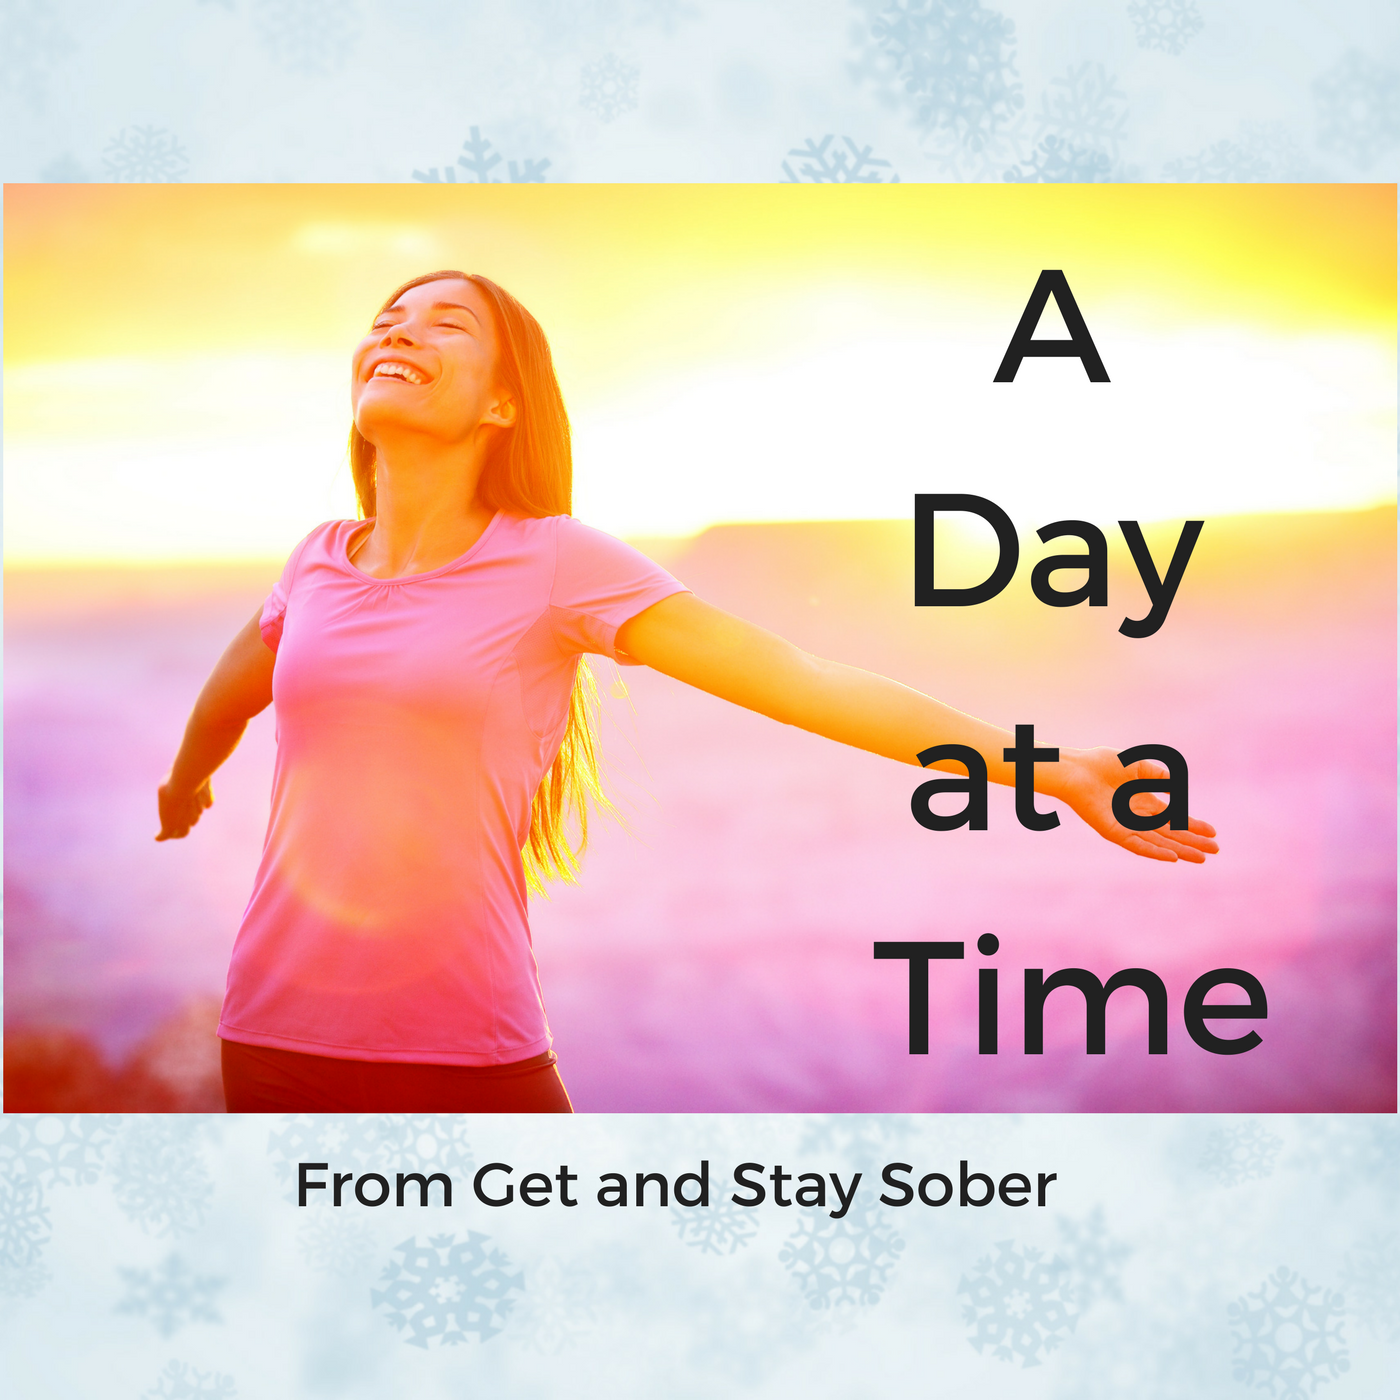 A Day at a Time (1).png